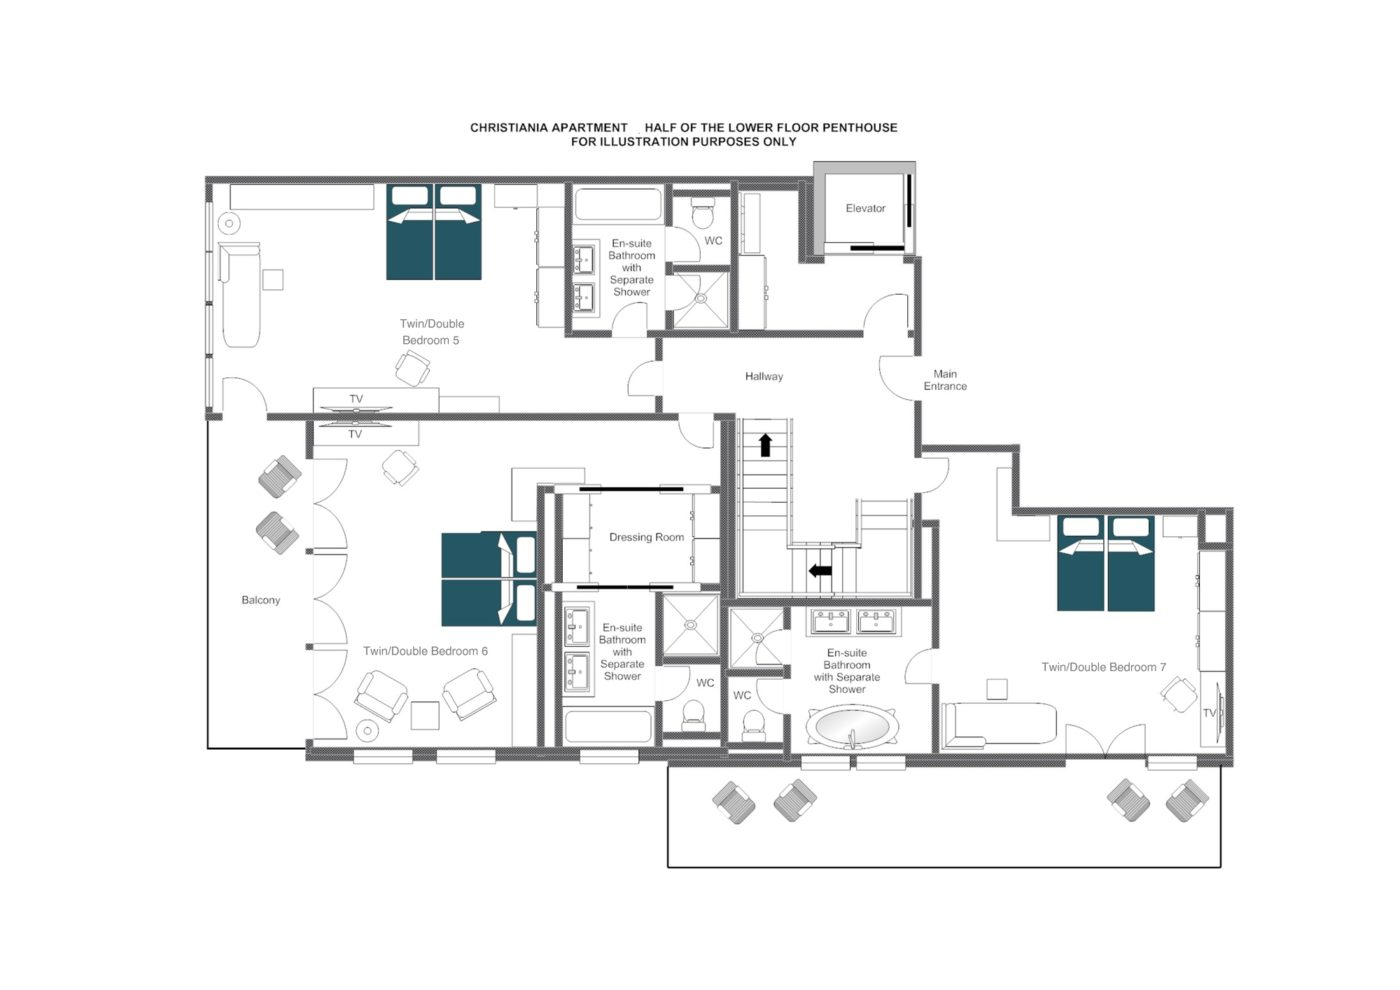 Christiania apartment penthouse floorplans, Zermatt